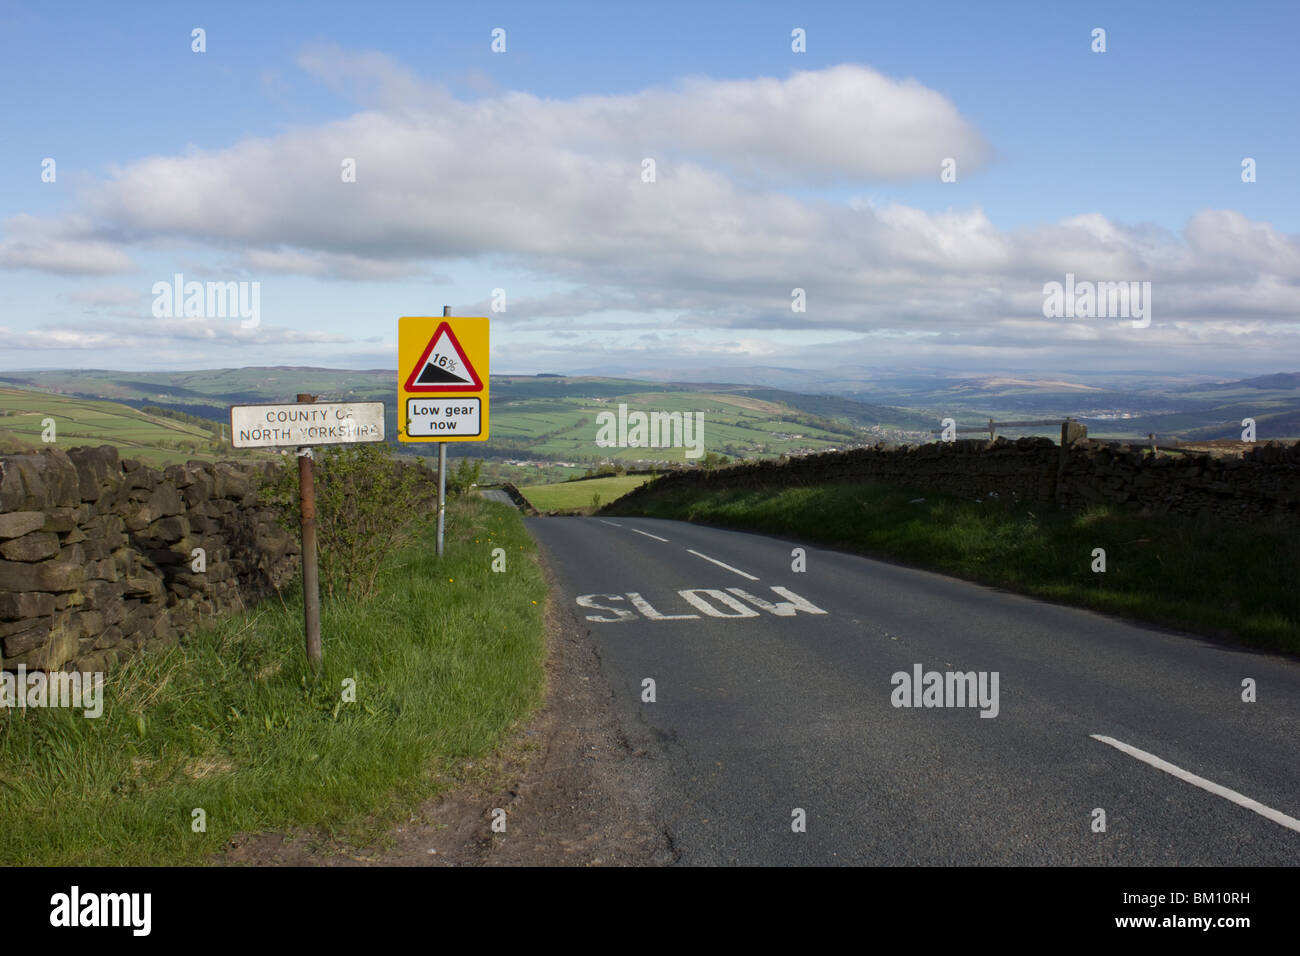 Road to Sutton-In-Craven, Yorkshire, England - Stock Image